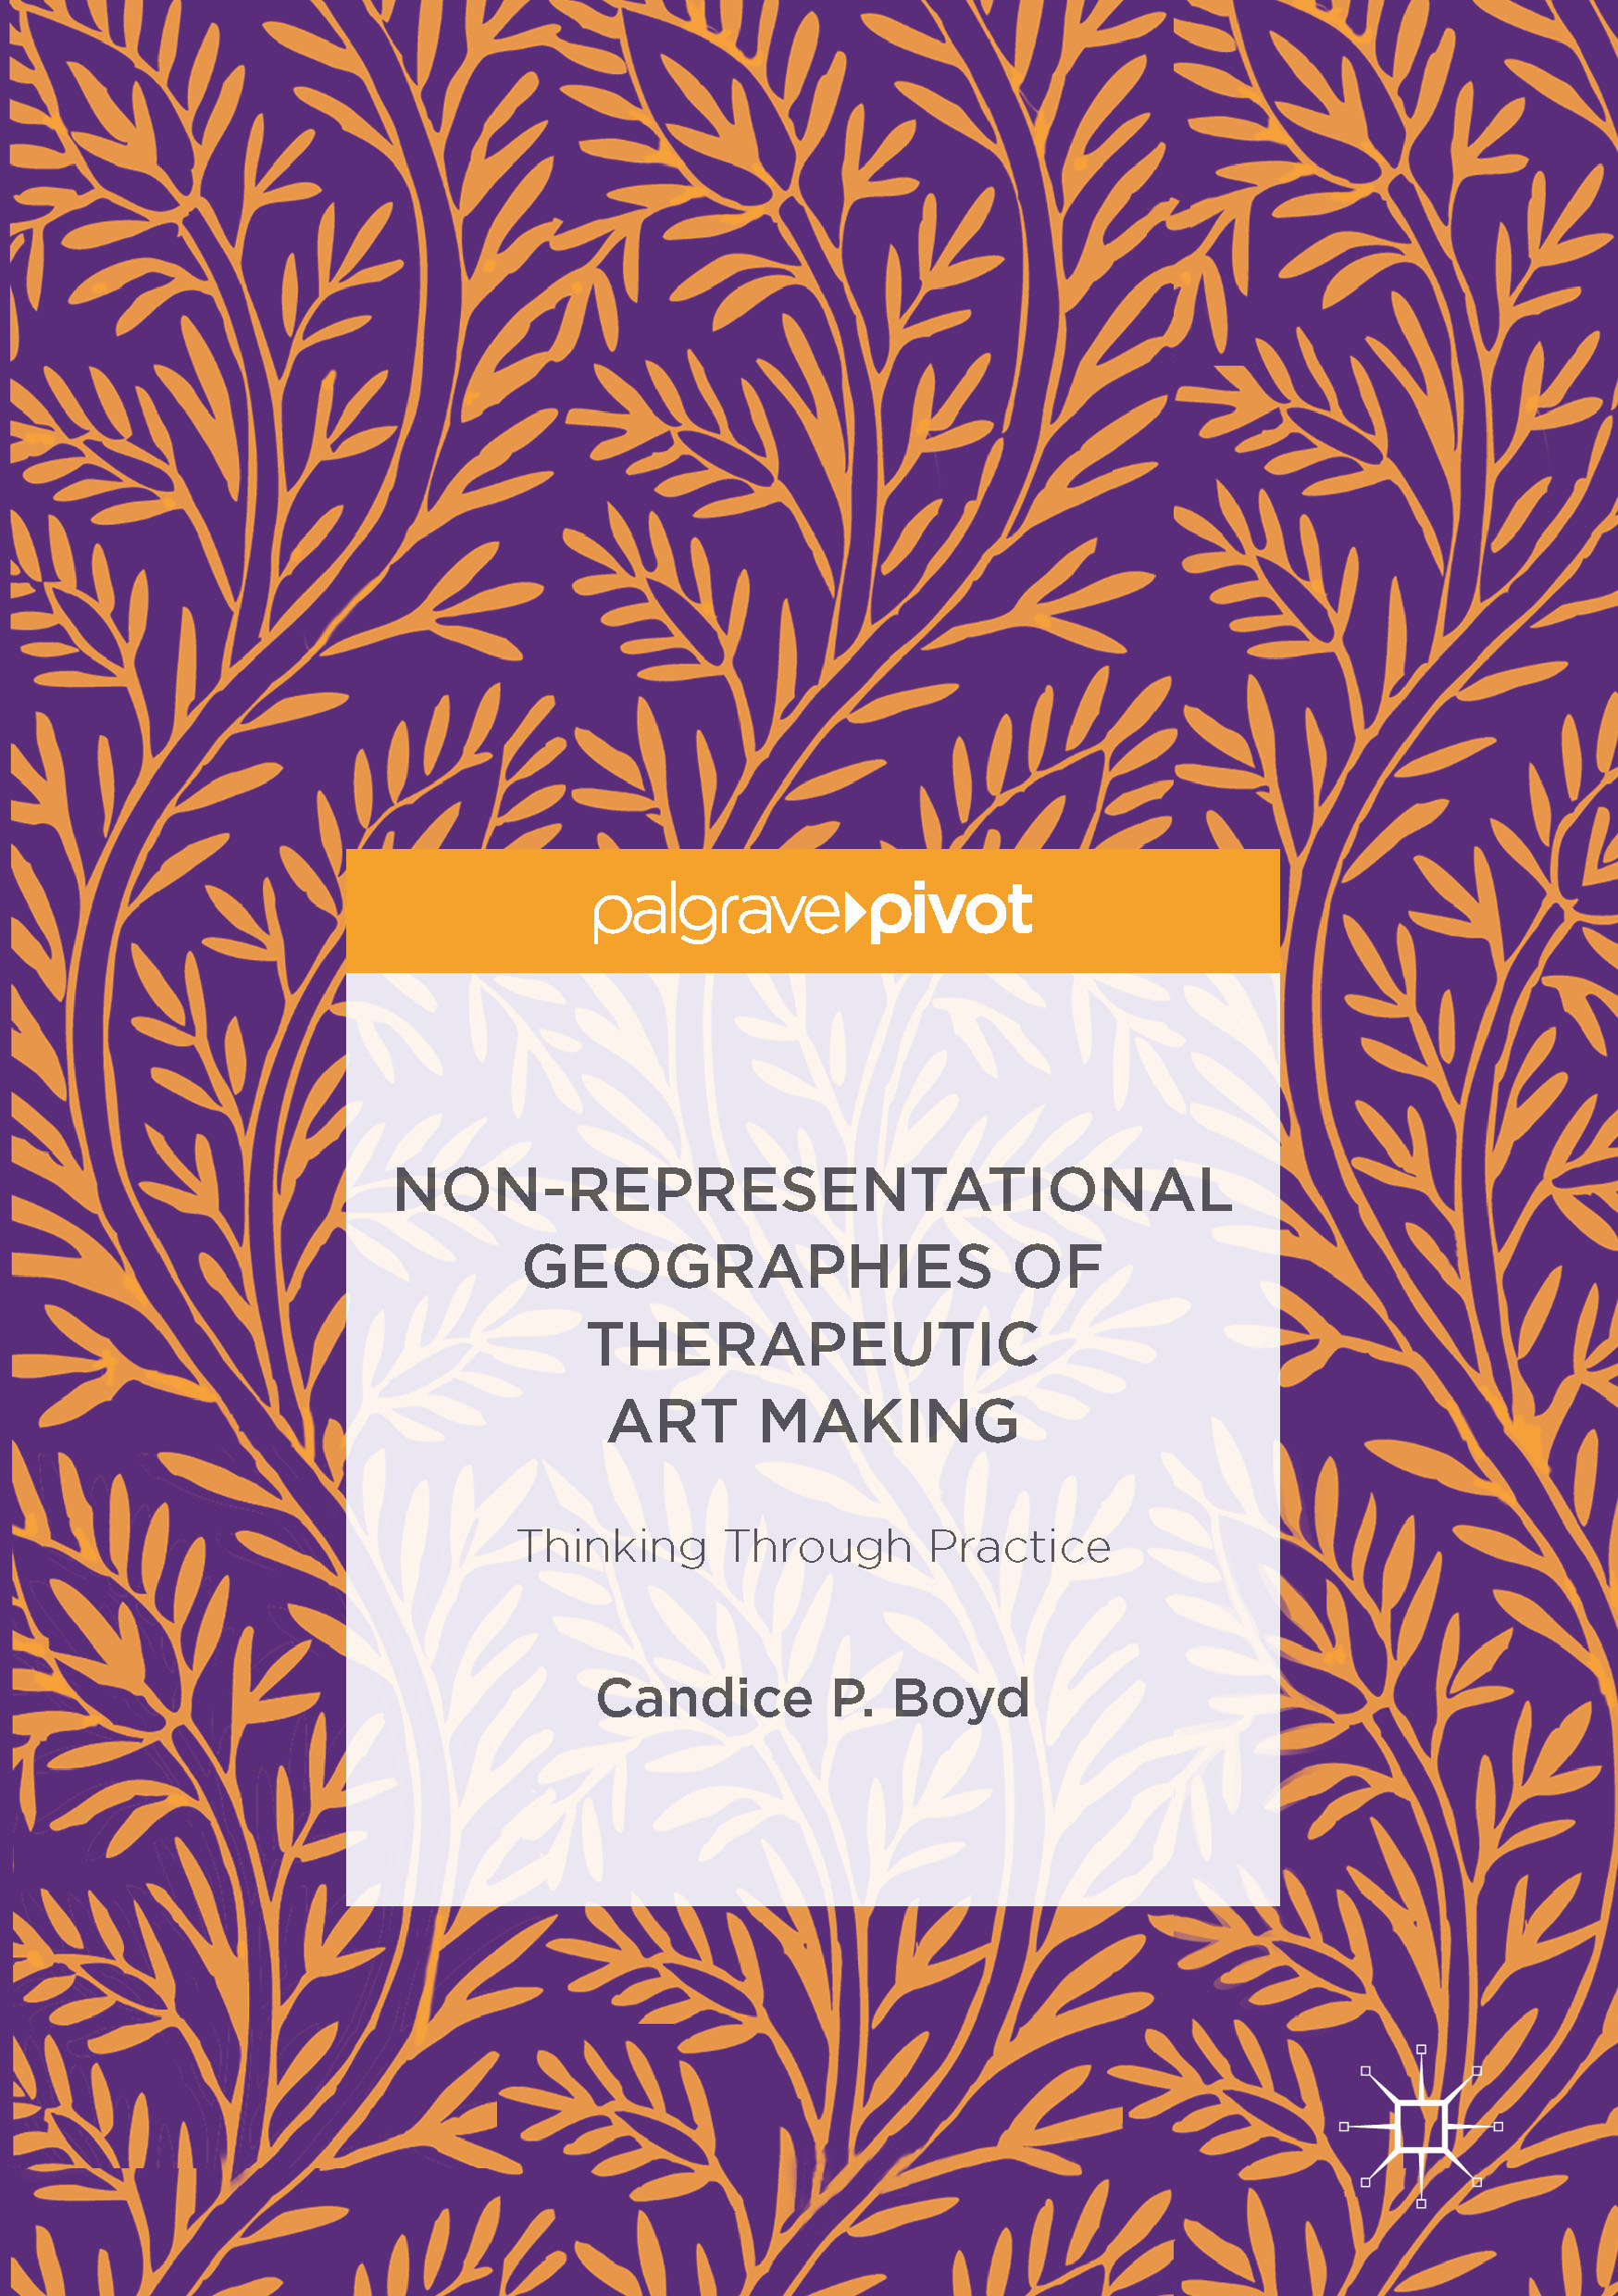 Boyd, Candice P. - Non-Representational Geographies of Therapeutic Art Making, ebook